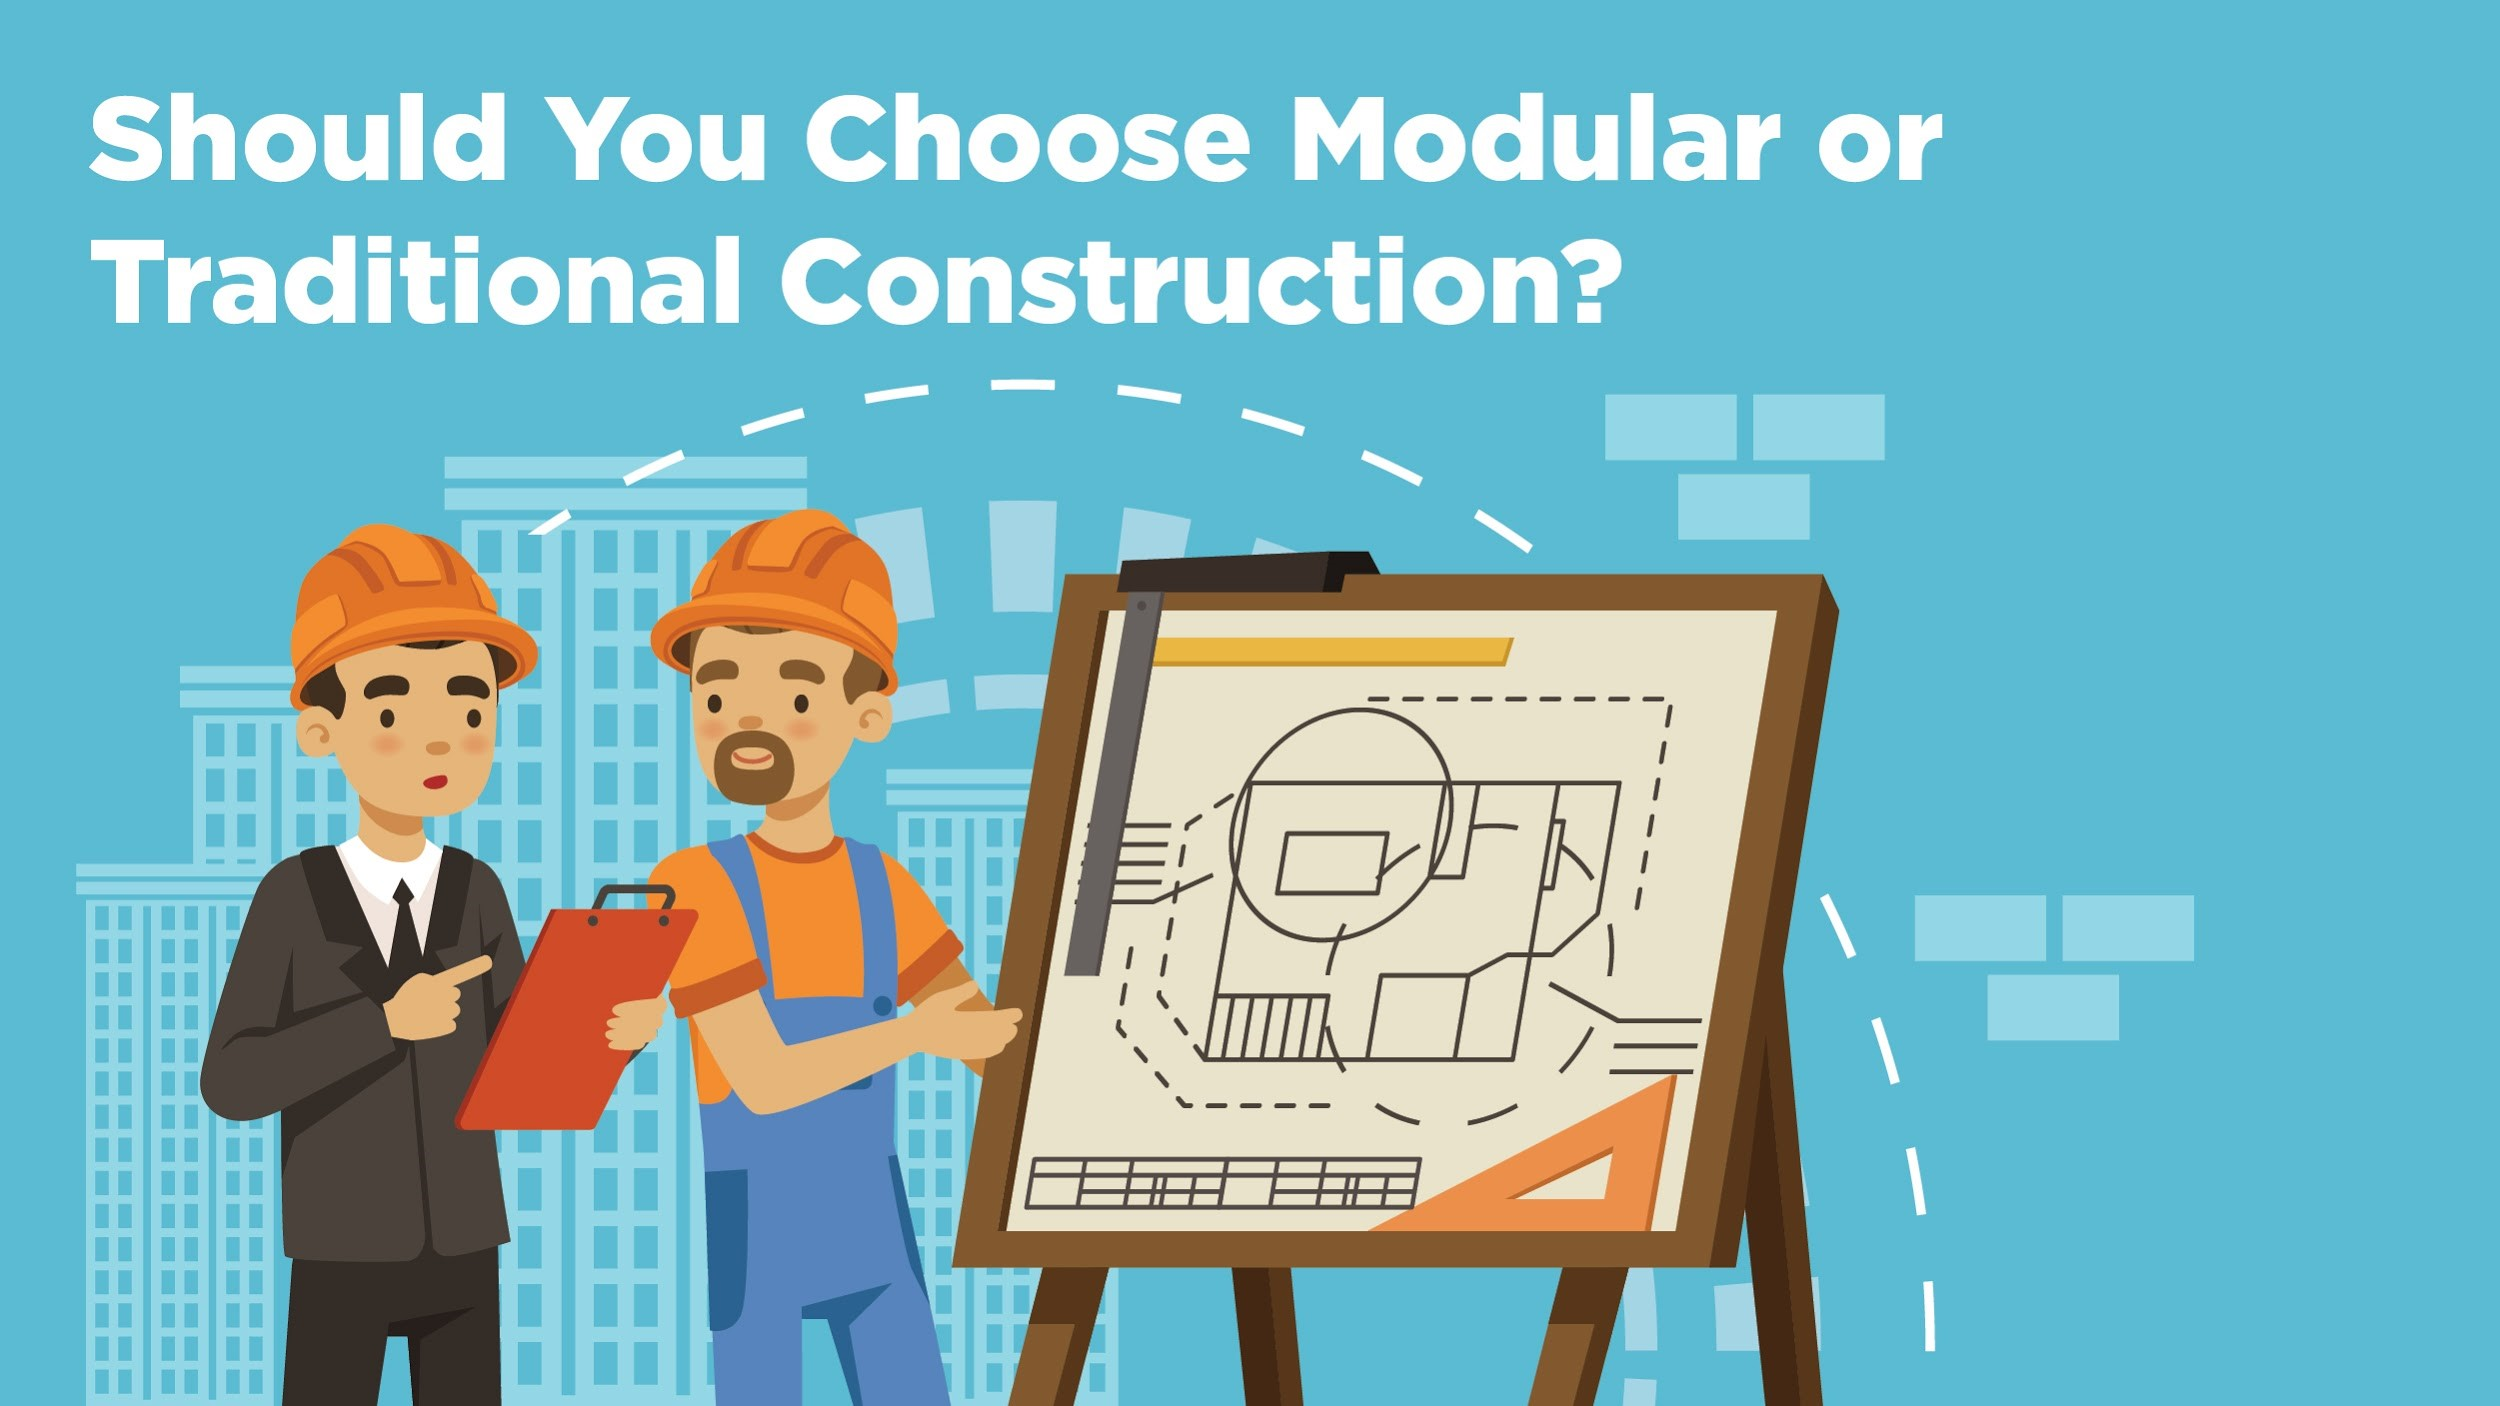 Should you choose modular or traditional construction?